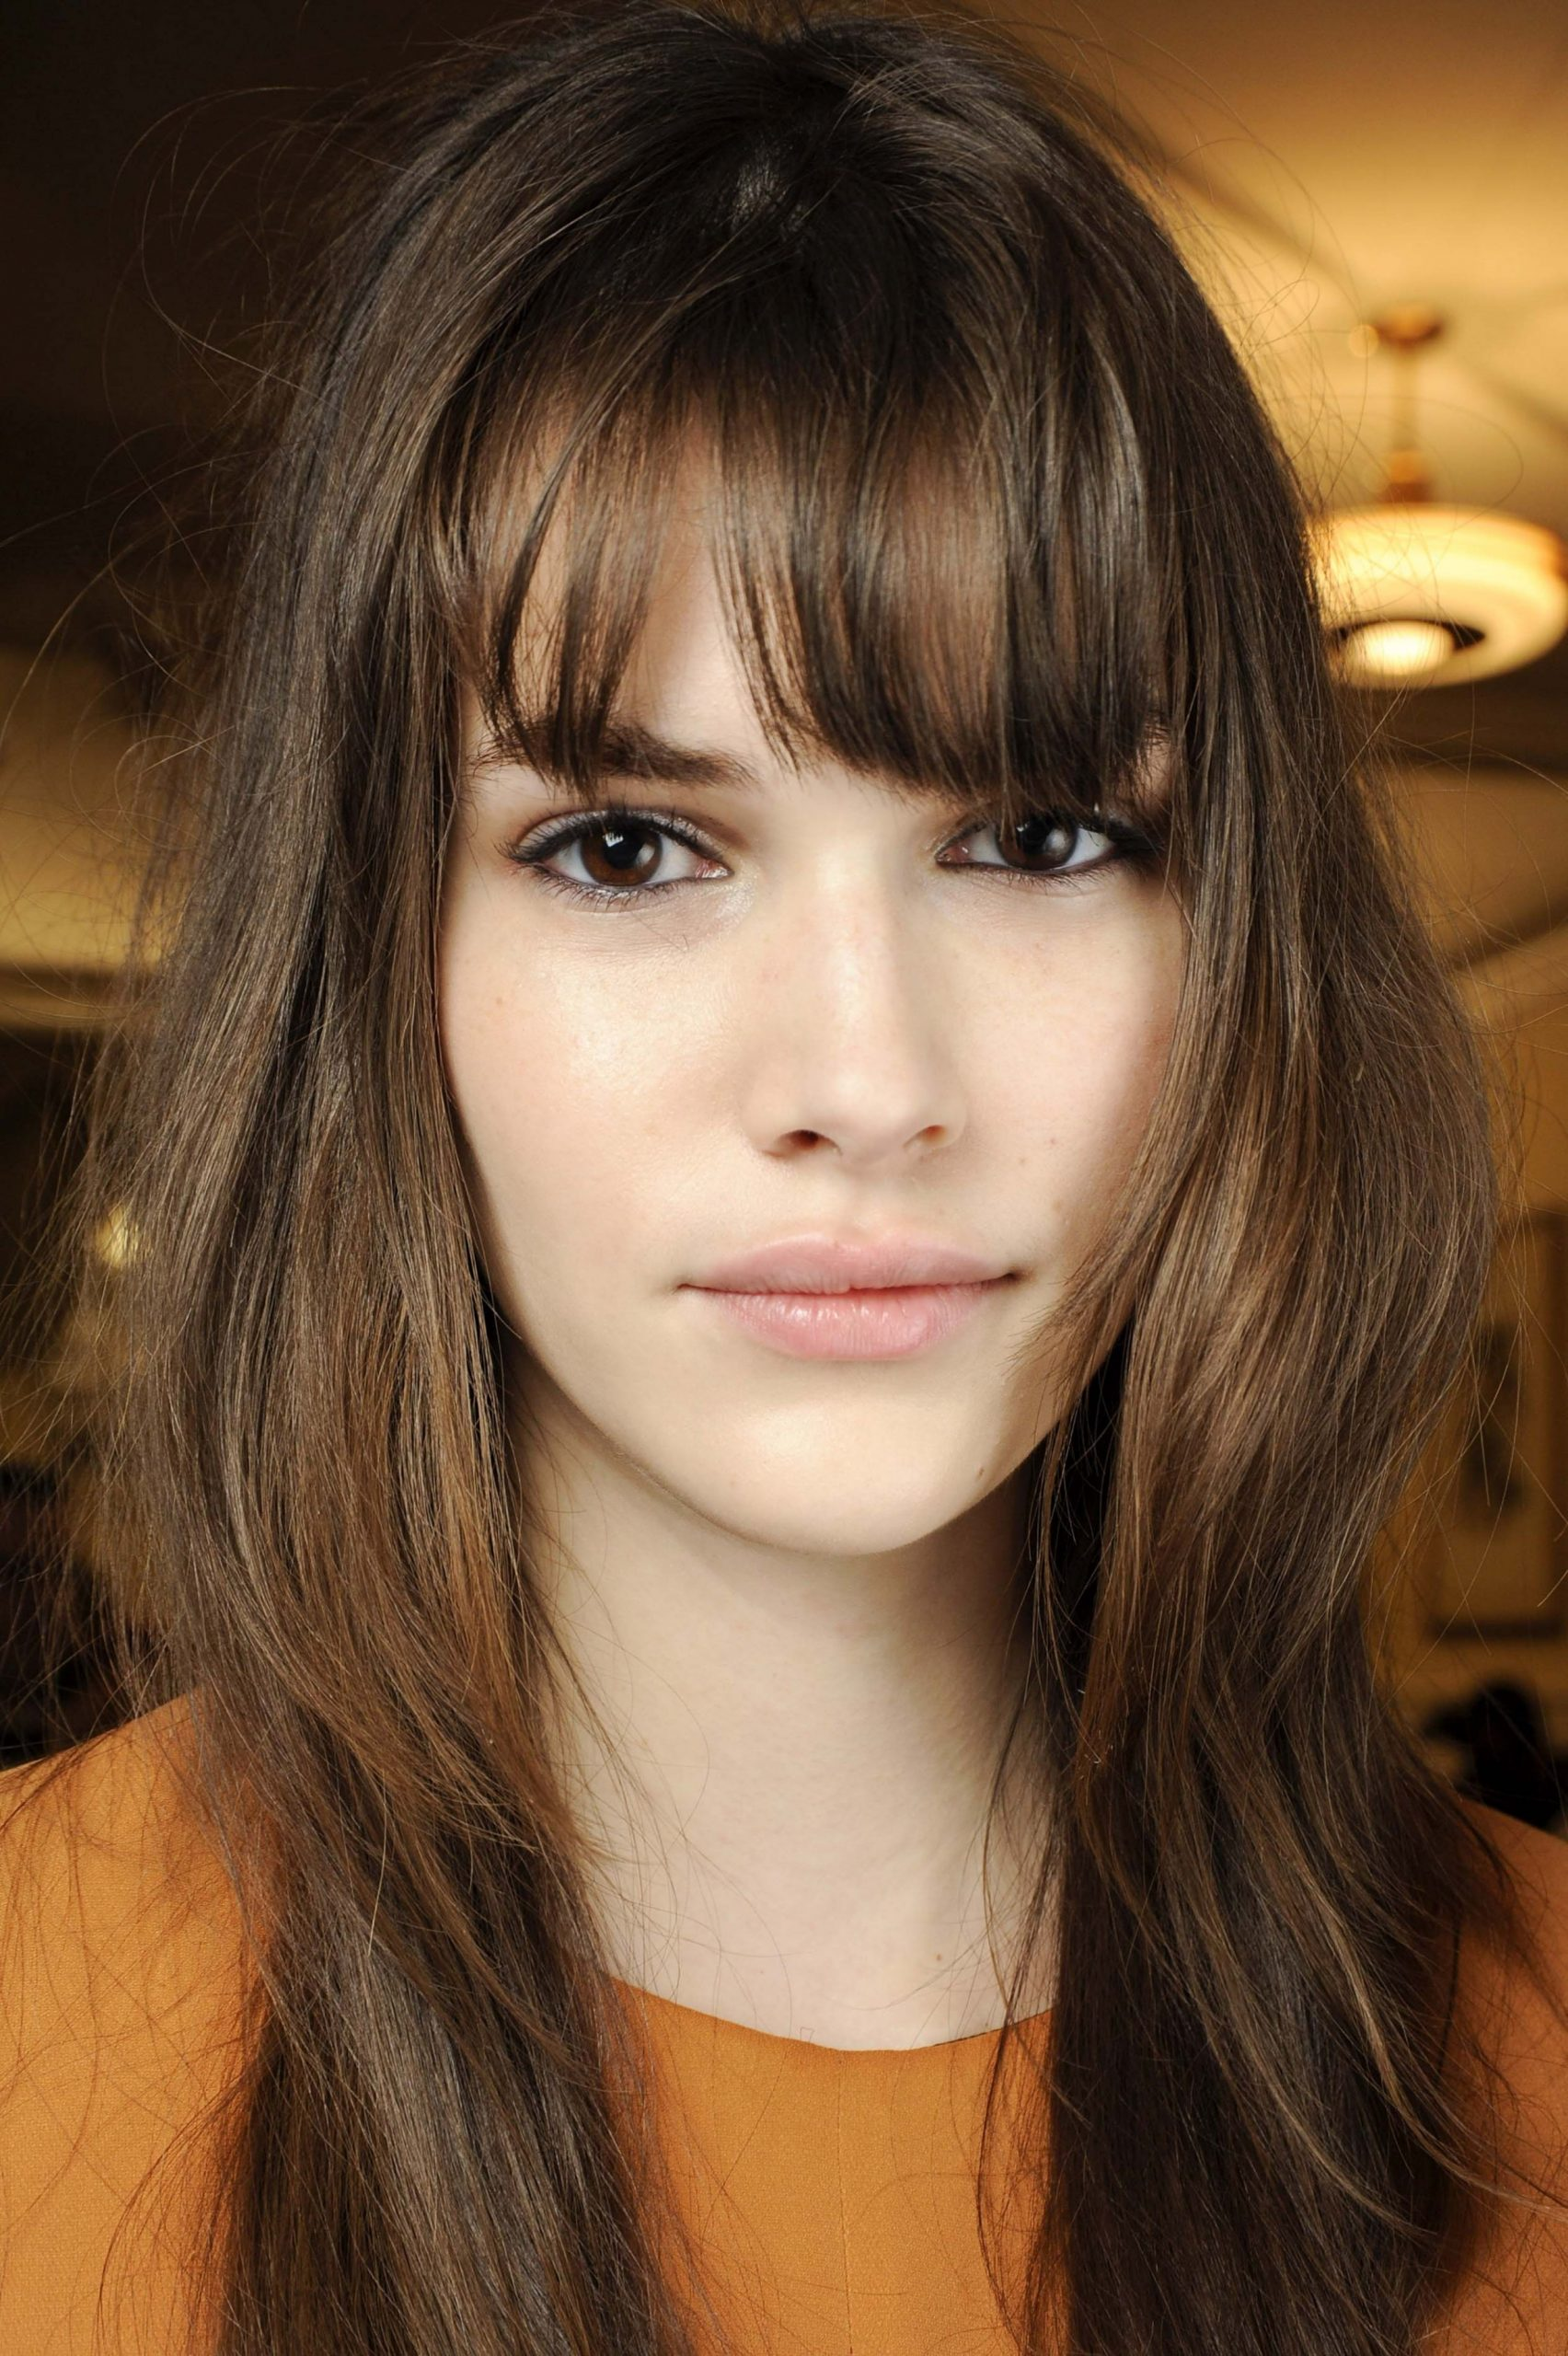 The Most Fashionable Hairstyles For Oblong Faces To Try Now Best Hairstyles For Oblong Faces